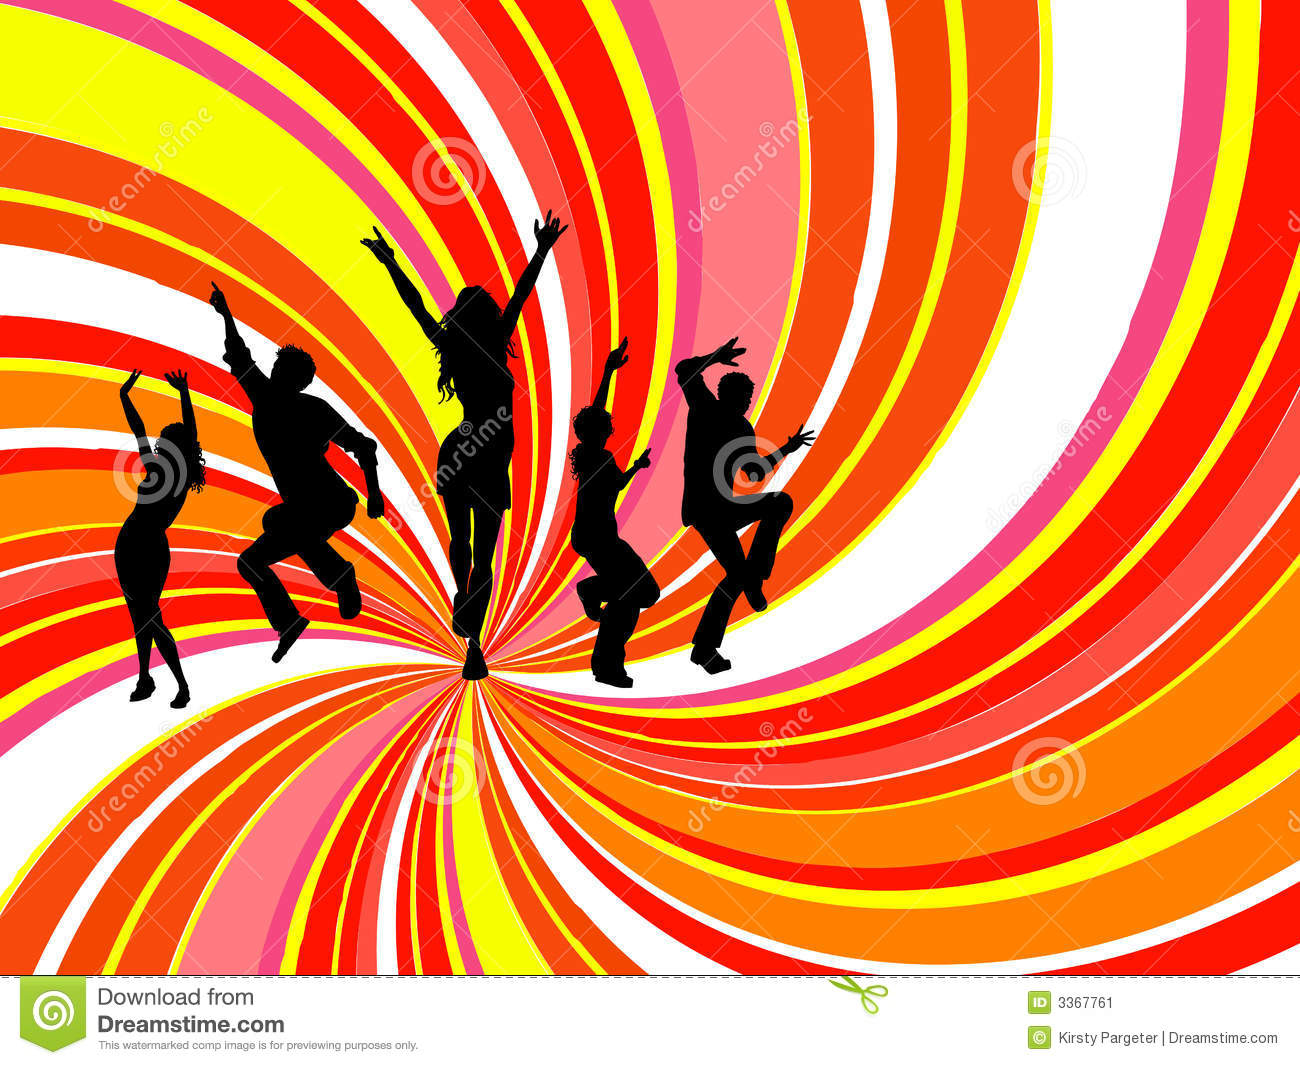 Silhouettes of people dancing on swirl background.